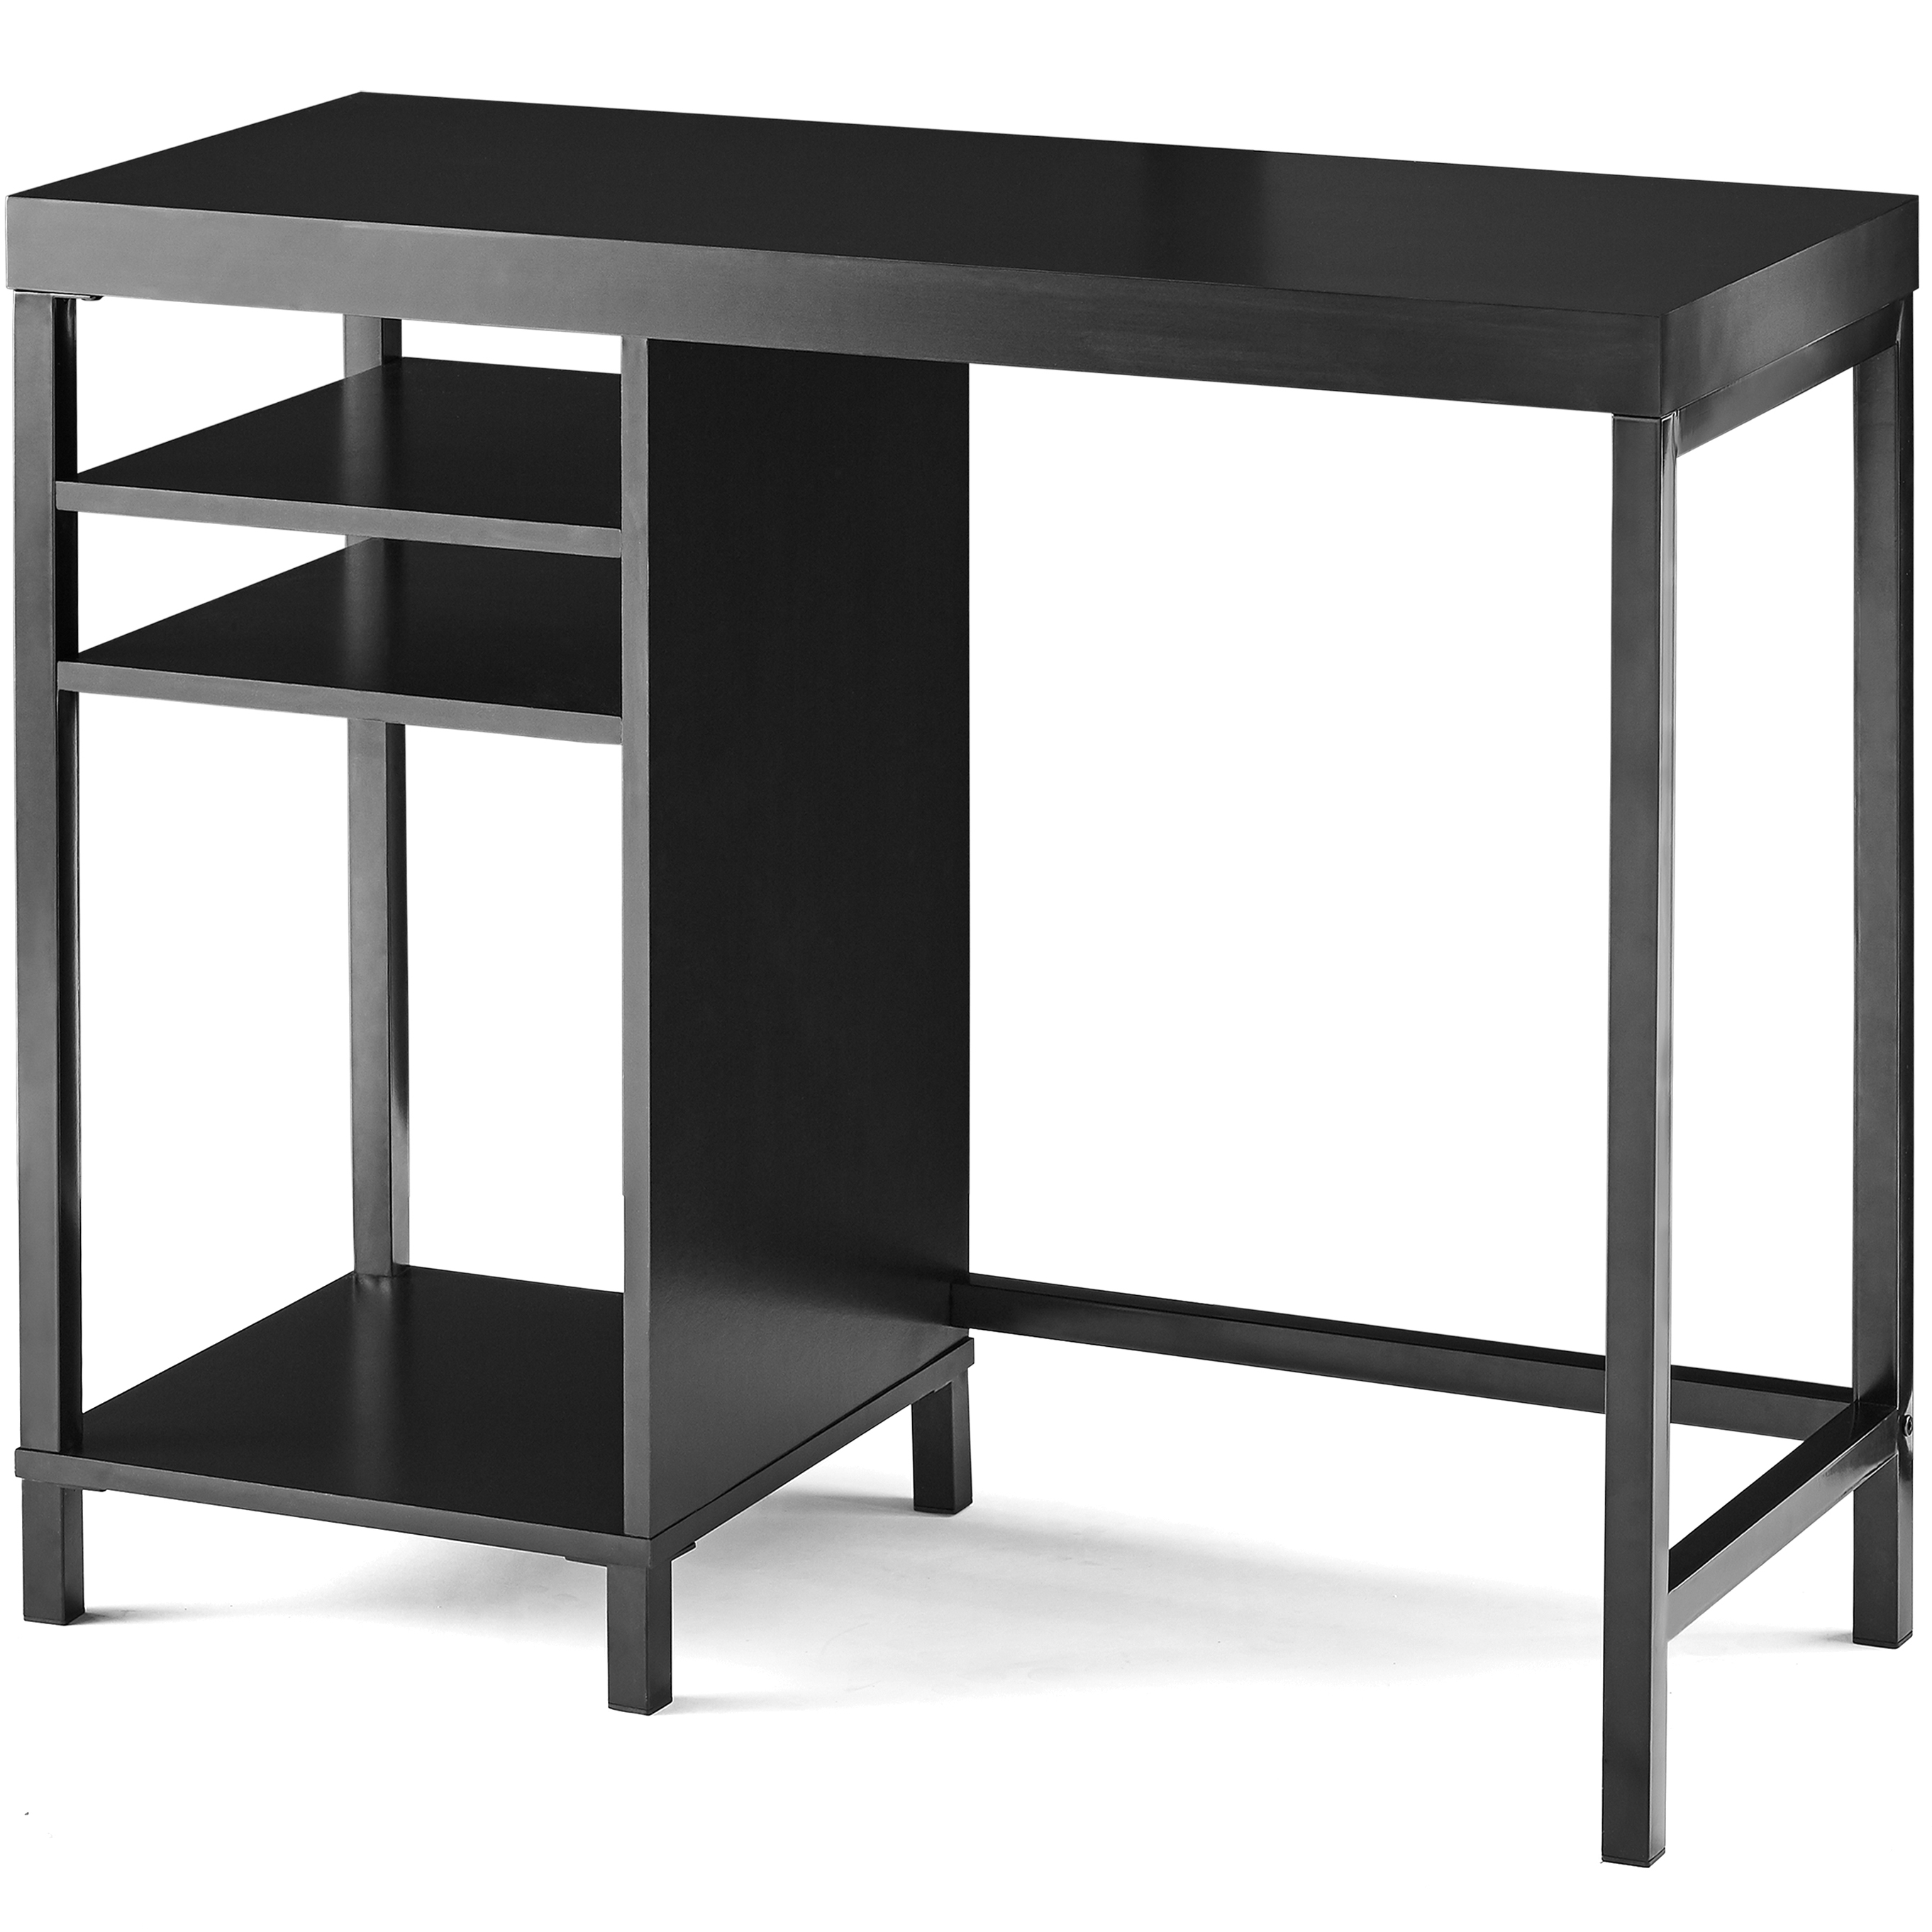 Mainstays Sumpter Park Cube Storage Desk, Multiple Colors